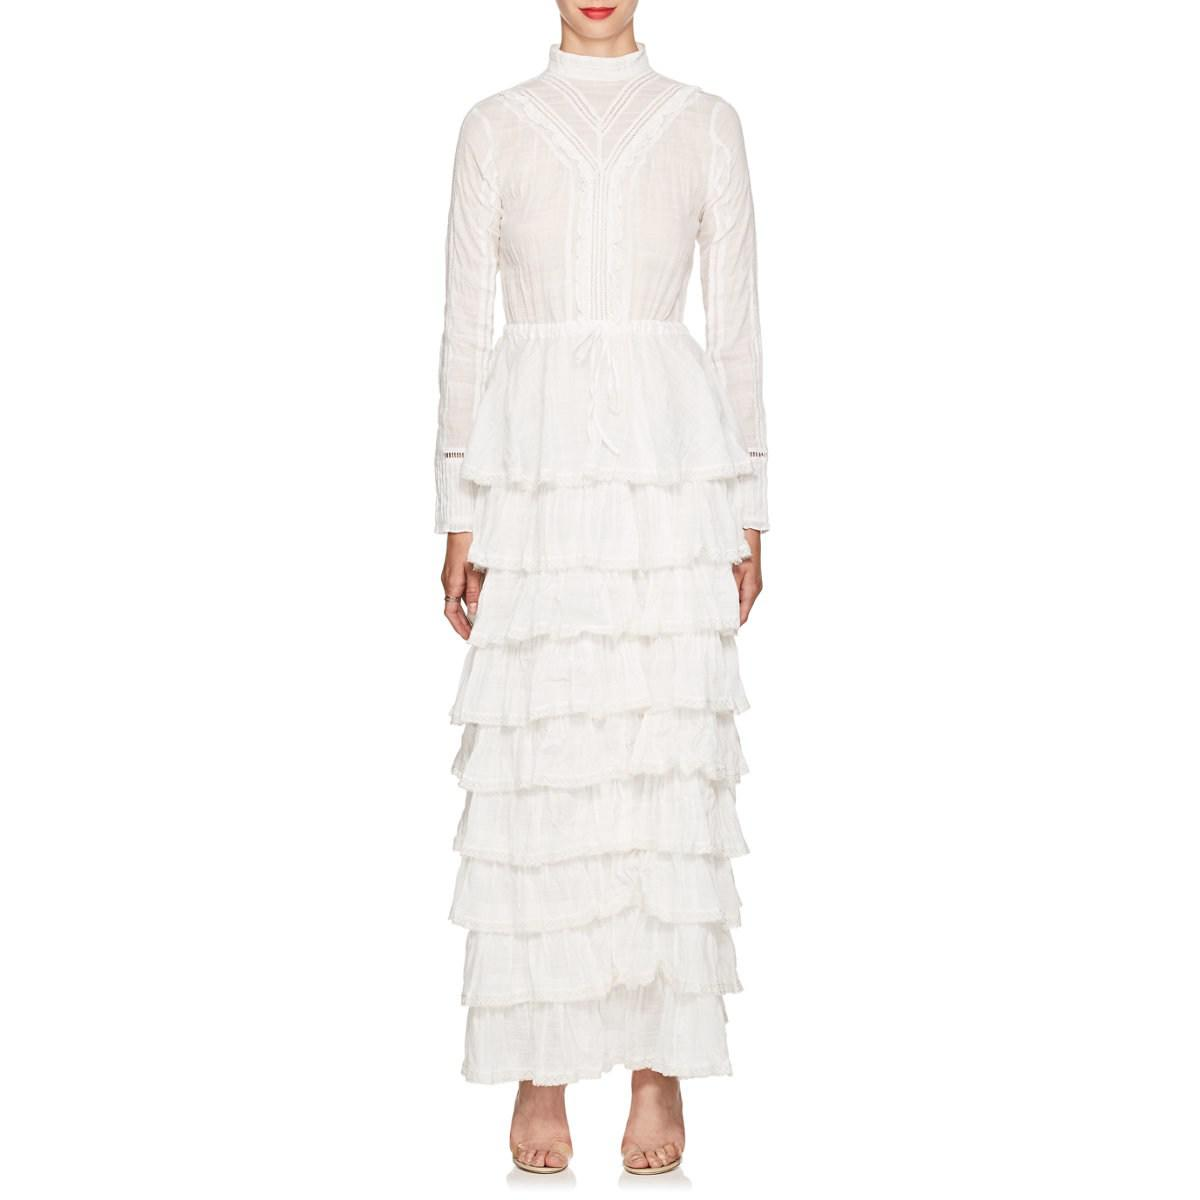 7cdf35be180 Lyst - Sir. The Label Lucille Embroidered Cotton Maxi Dress in White ...